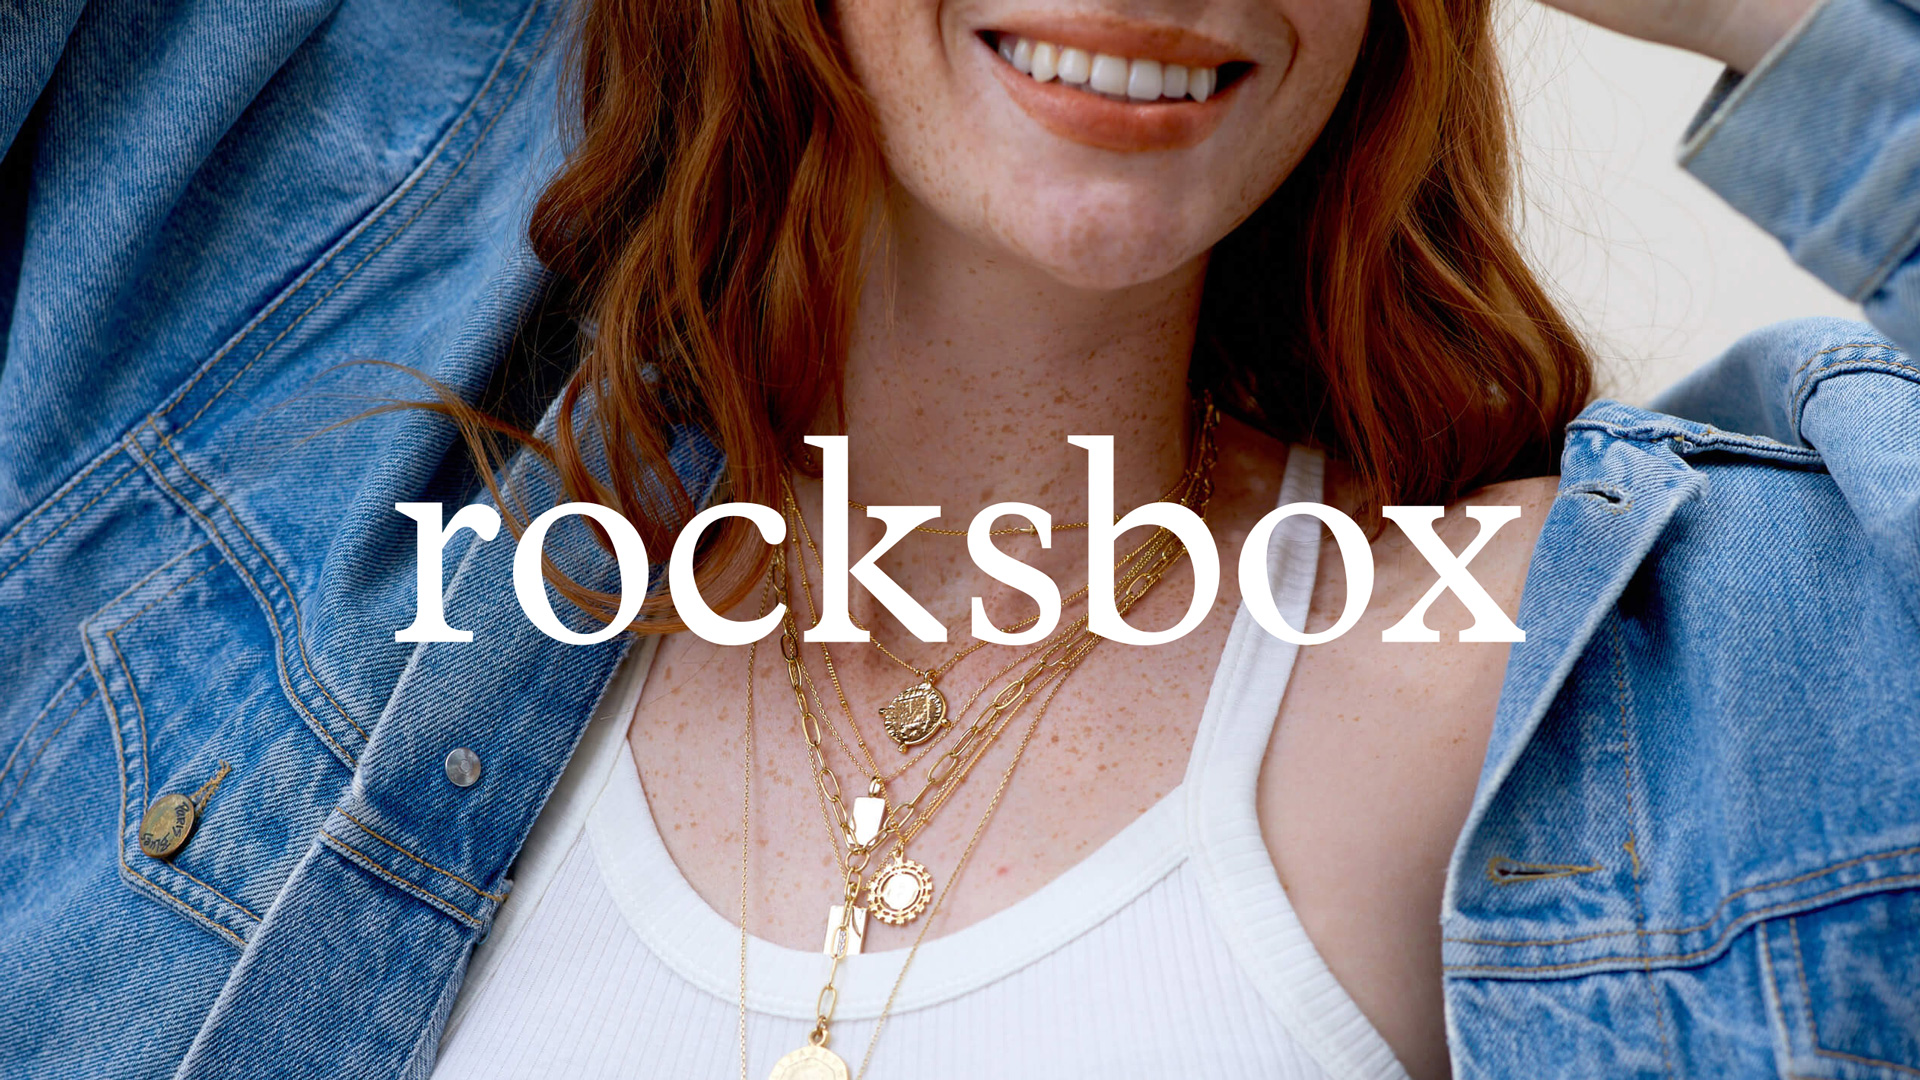 a freckly red head from the mouth down, showing a bunch of gold necklaces around her neck